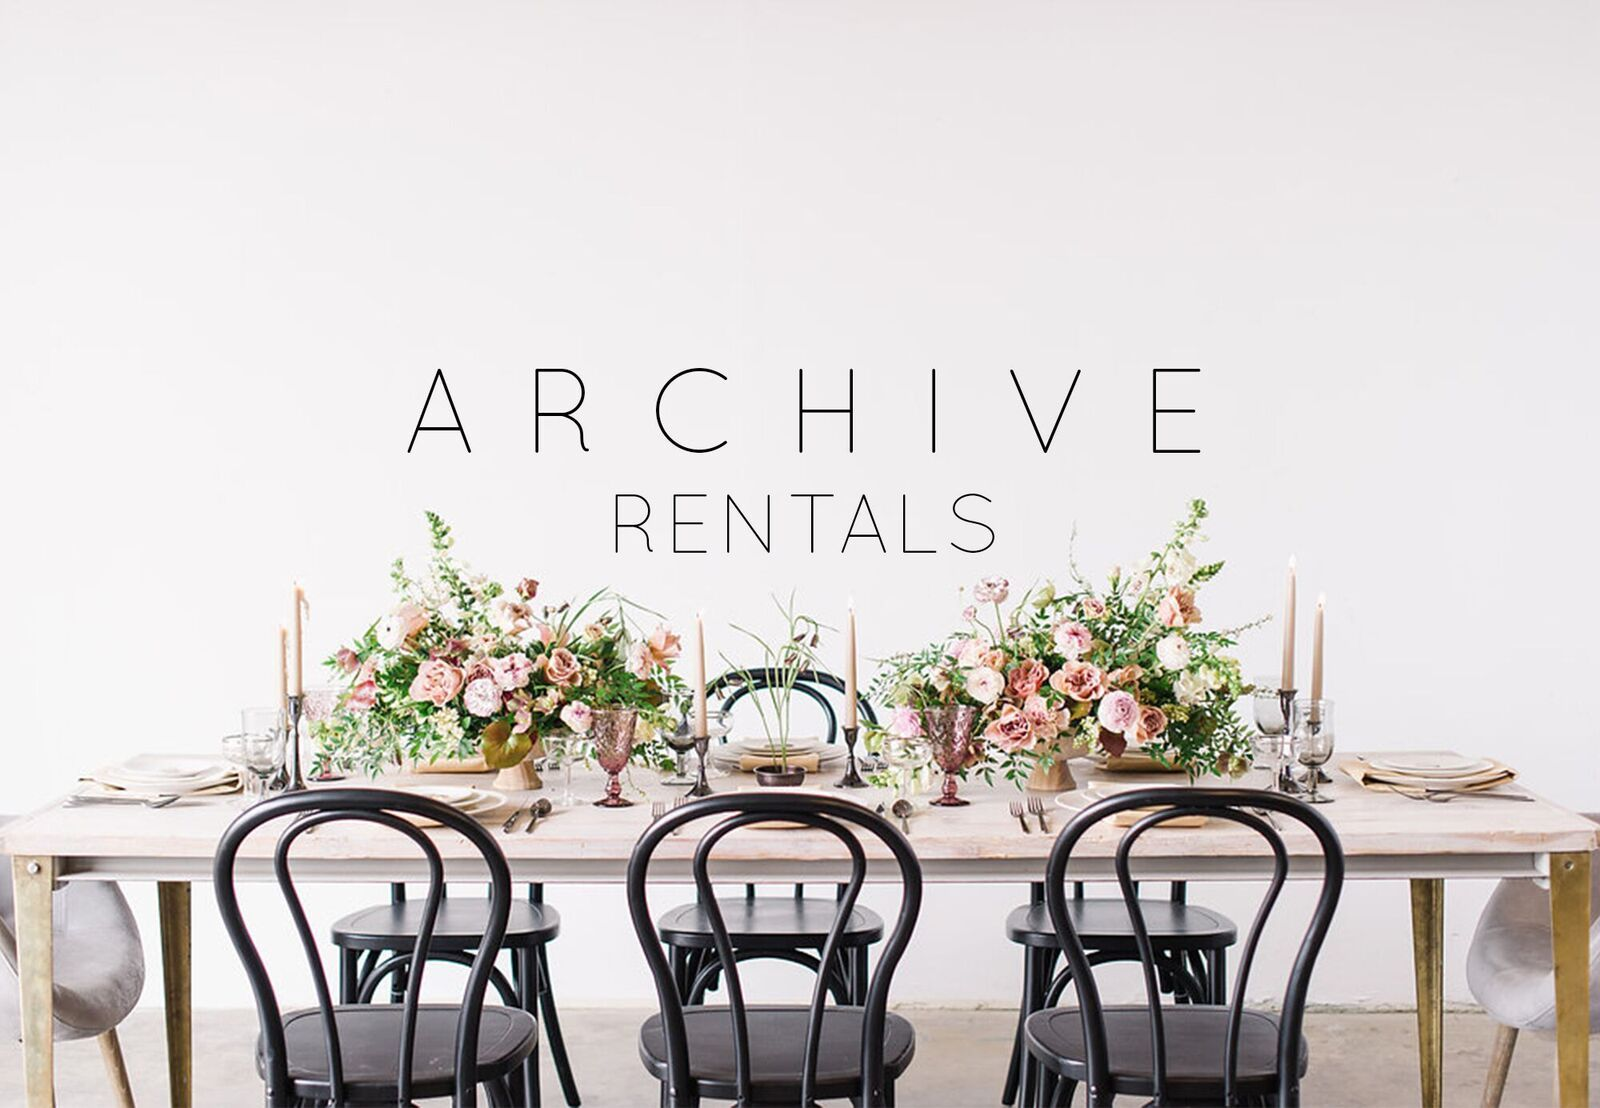 The Journey to My Dream Job in Events with Archive Rentals